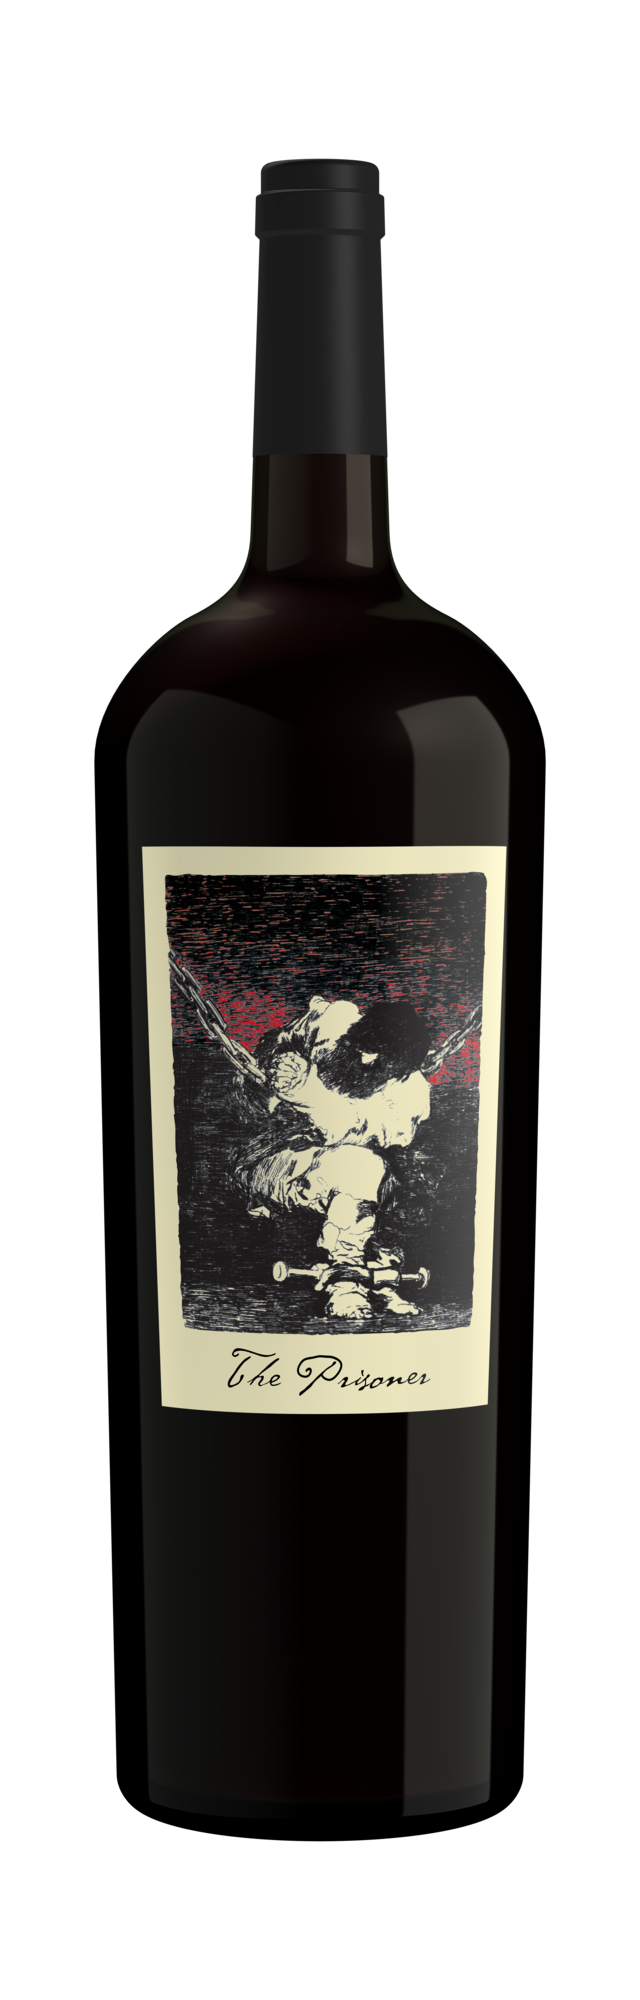 The Prisoner 2018 Red Blend, Napa Valley - MAGNUM (1.5L)